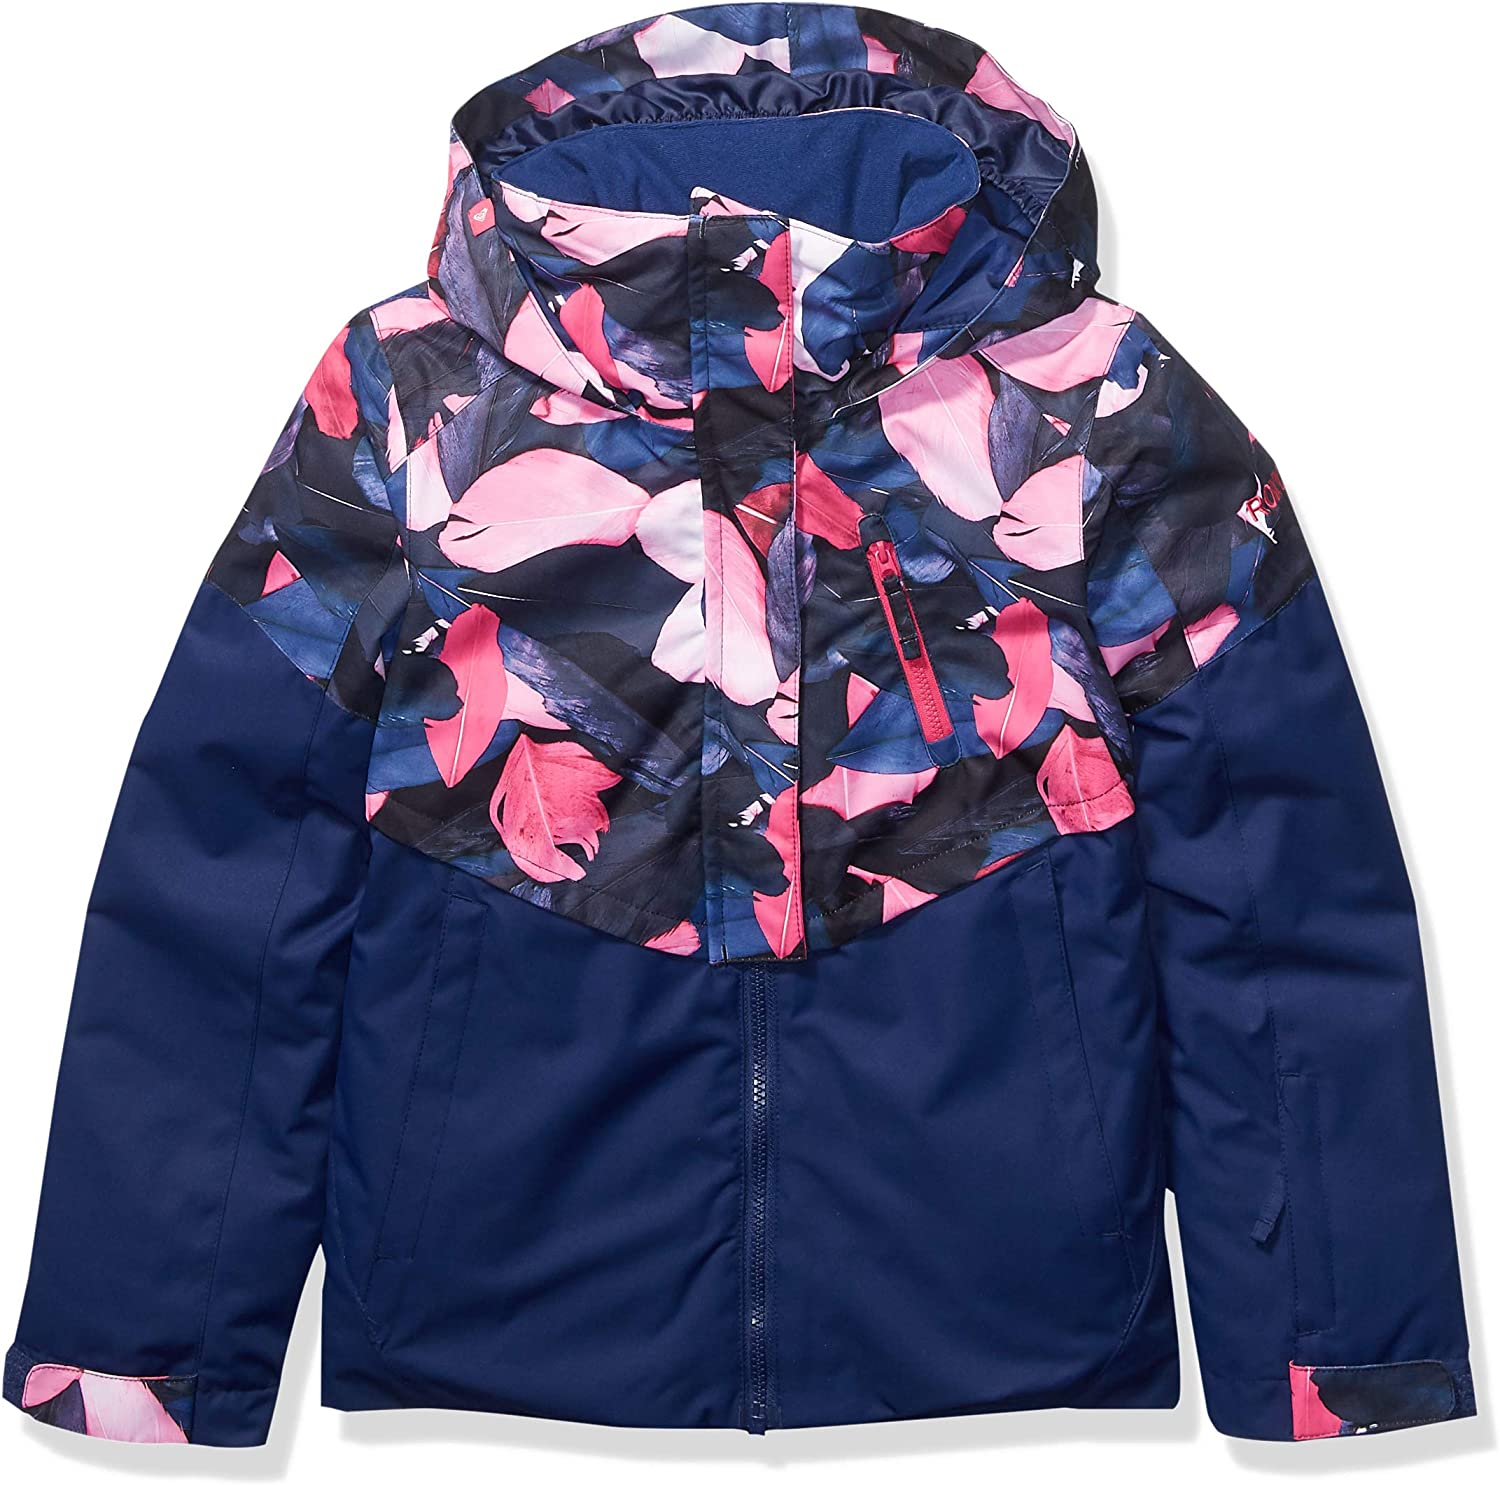 Ranking integrated 1st place Roxy Frozen Flow Girl Purchase Jacket